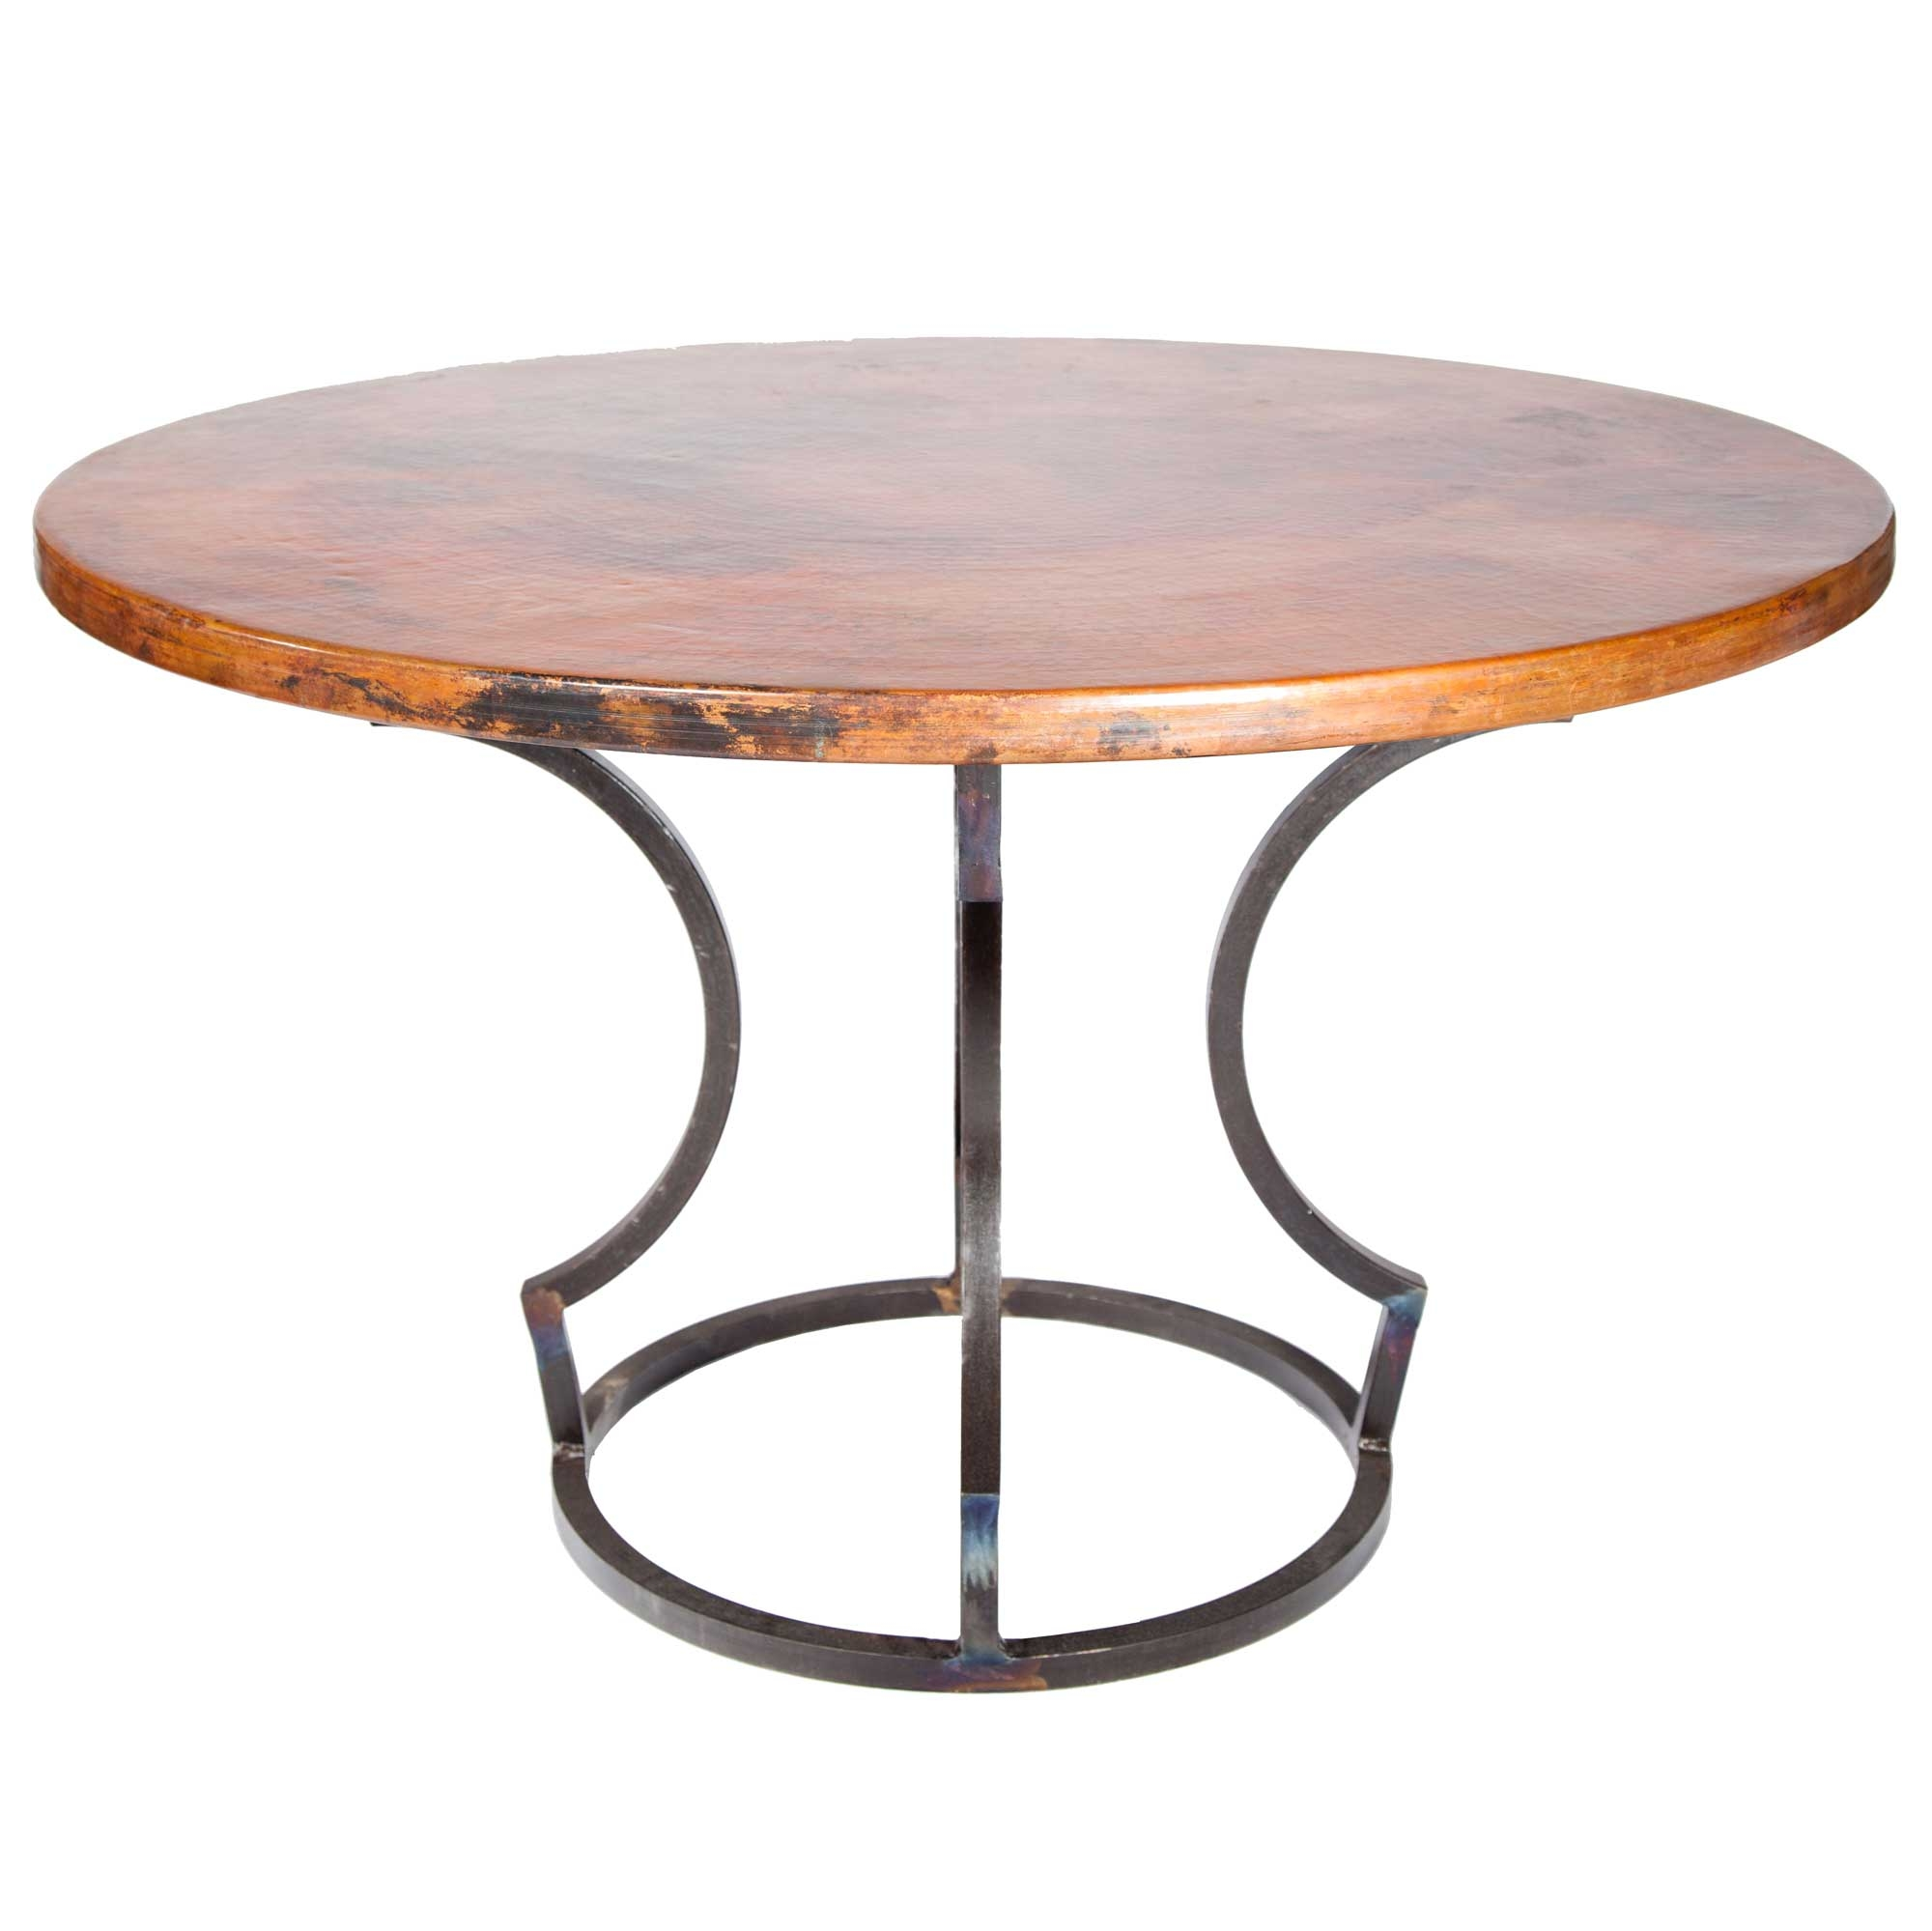 "Charles Iron Dining Table with 48"" Round Hammered Copper Top"